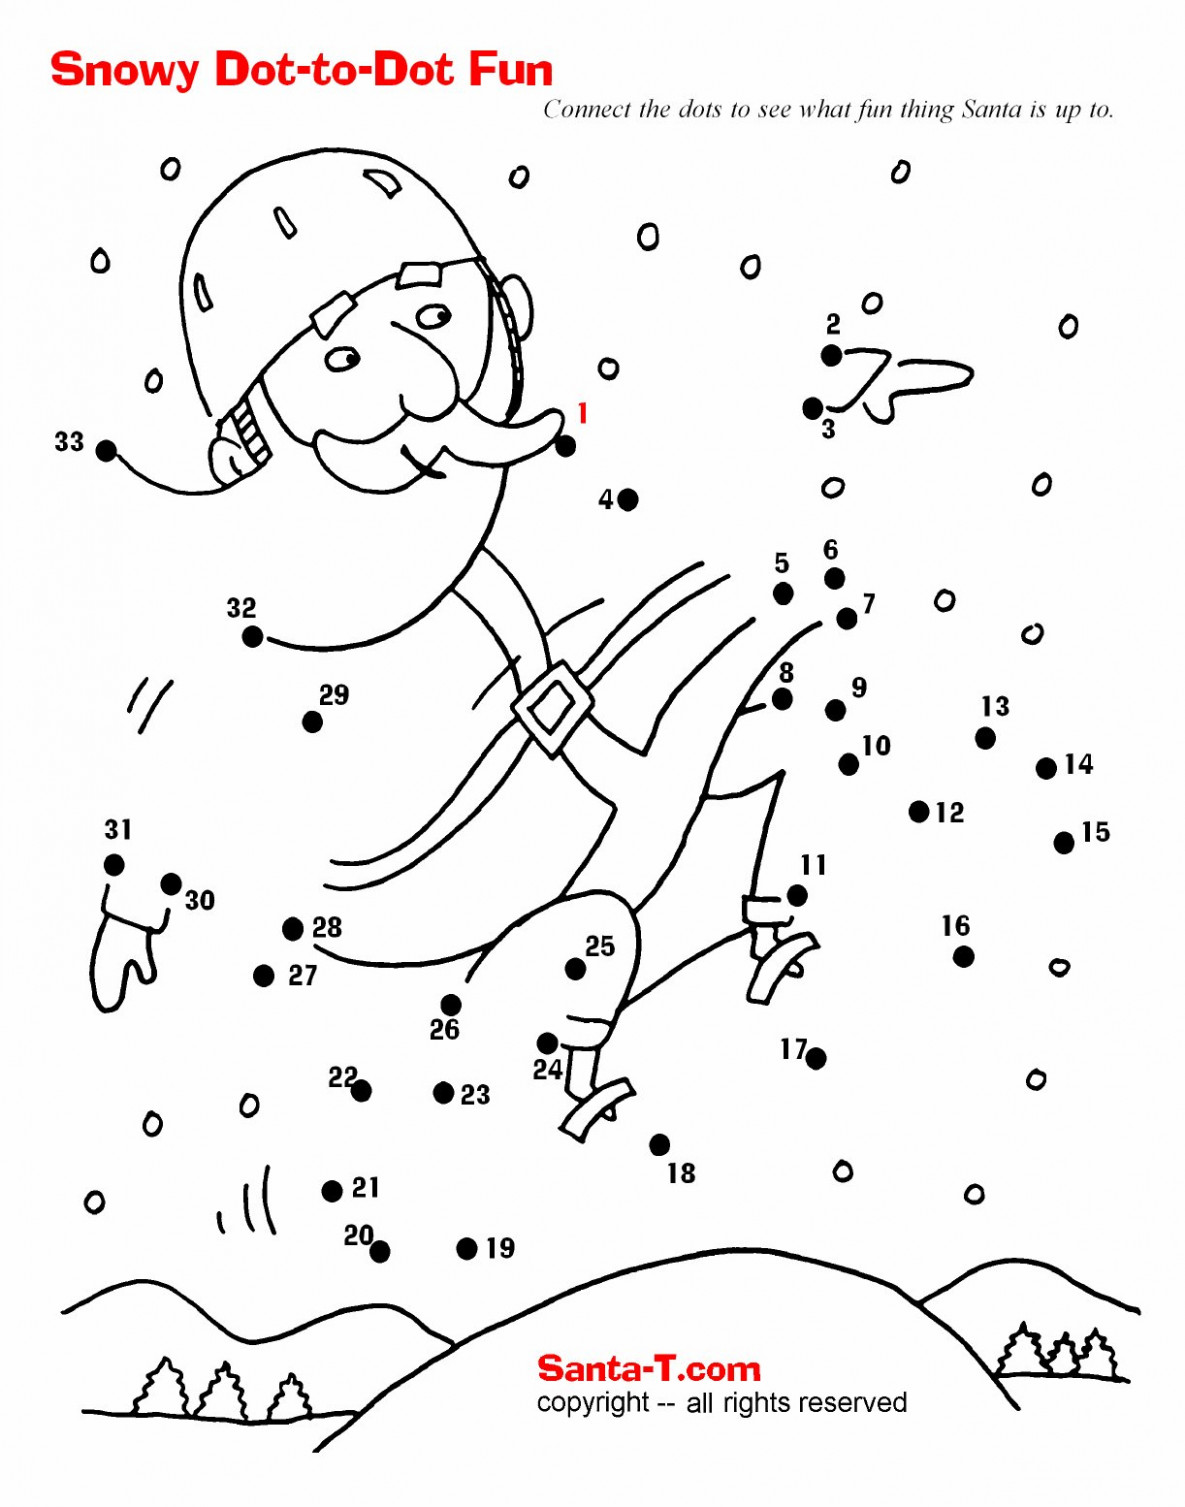 Snowy Santa Fun Dot-to-dot. Connect the dots to see what fun thing ..